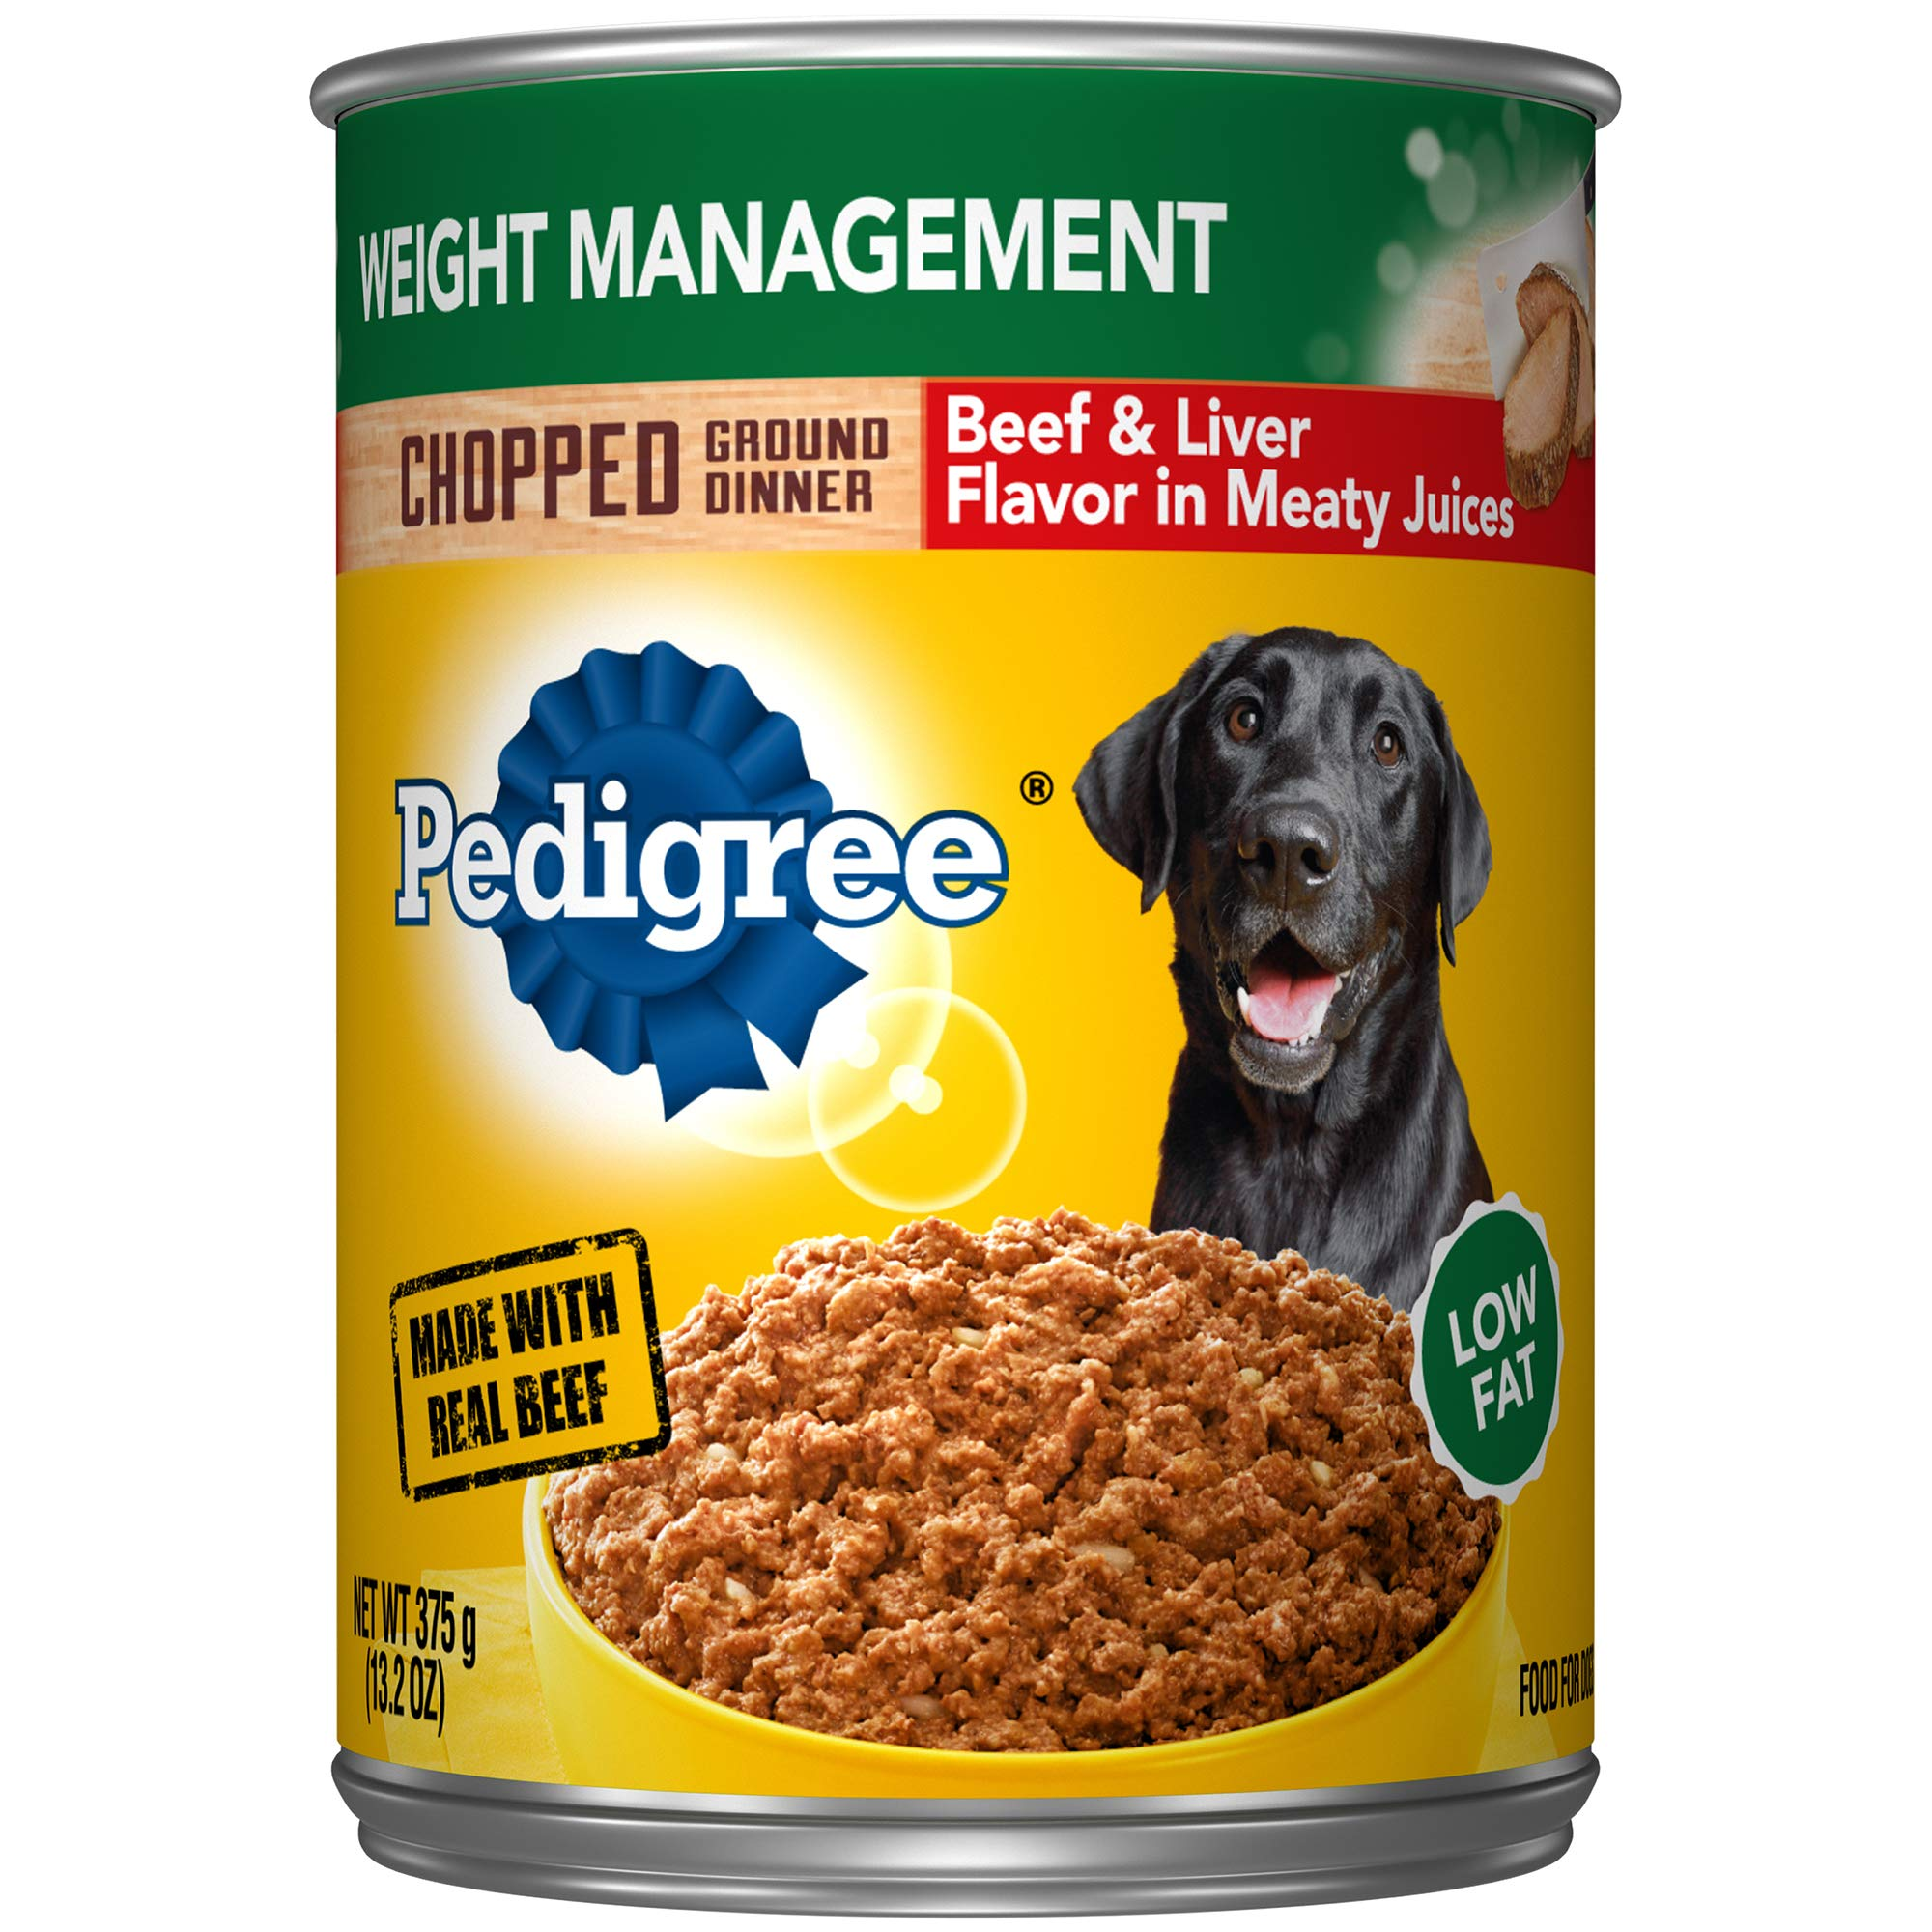 Pedigree Chopped Ground Dinner Weight Management With Beef & Liver Flavor Adult Canned Wet Dog Food, (12) 13.2 Oz. Cans by Pedigree